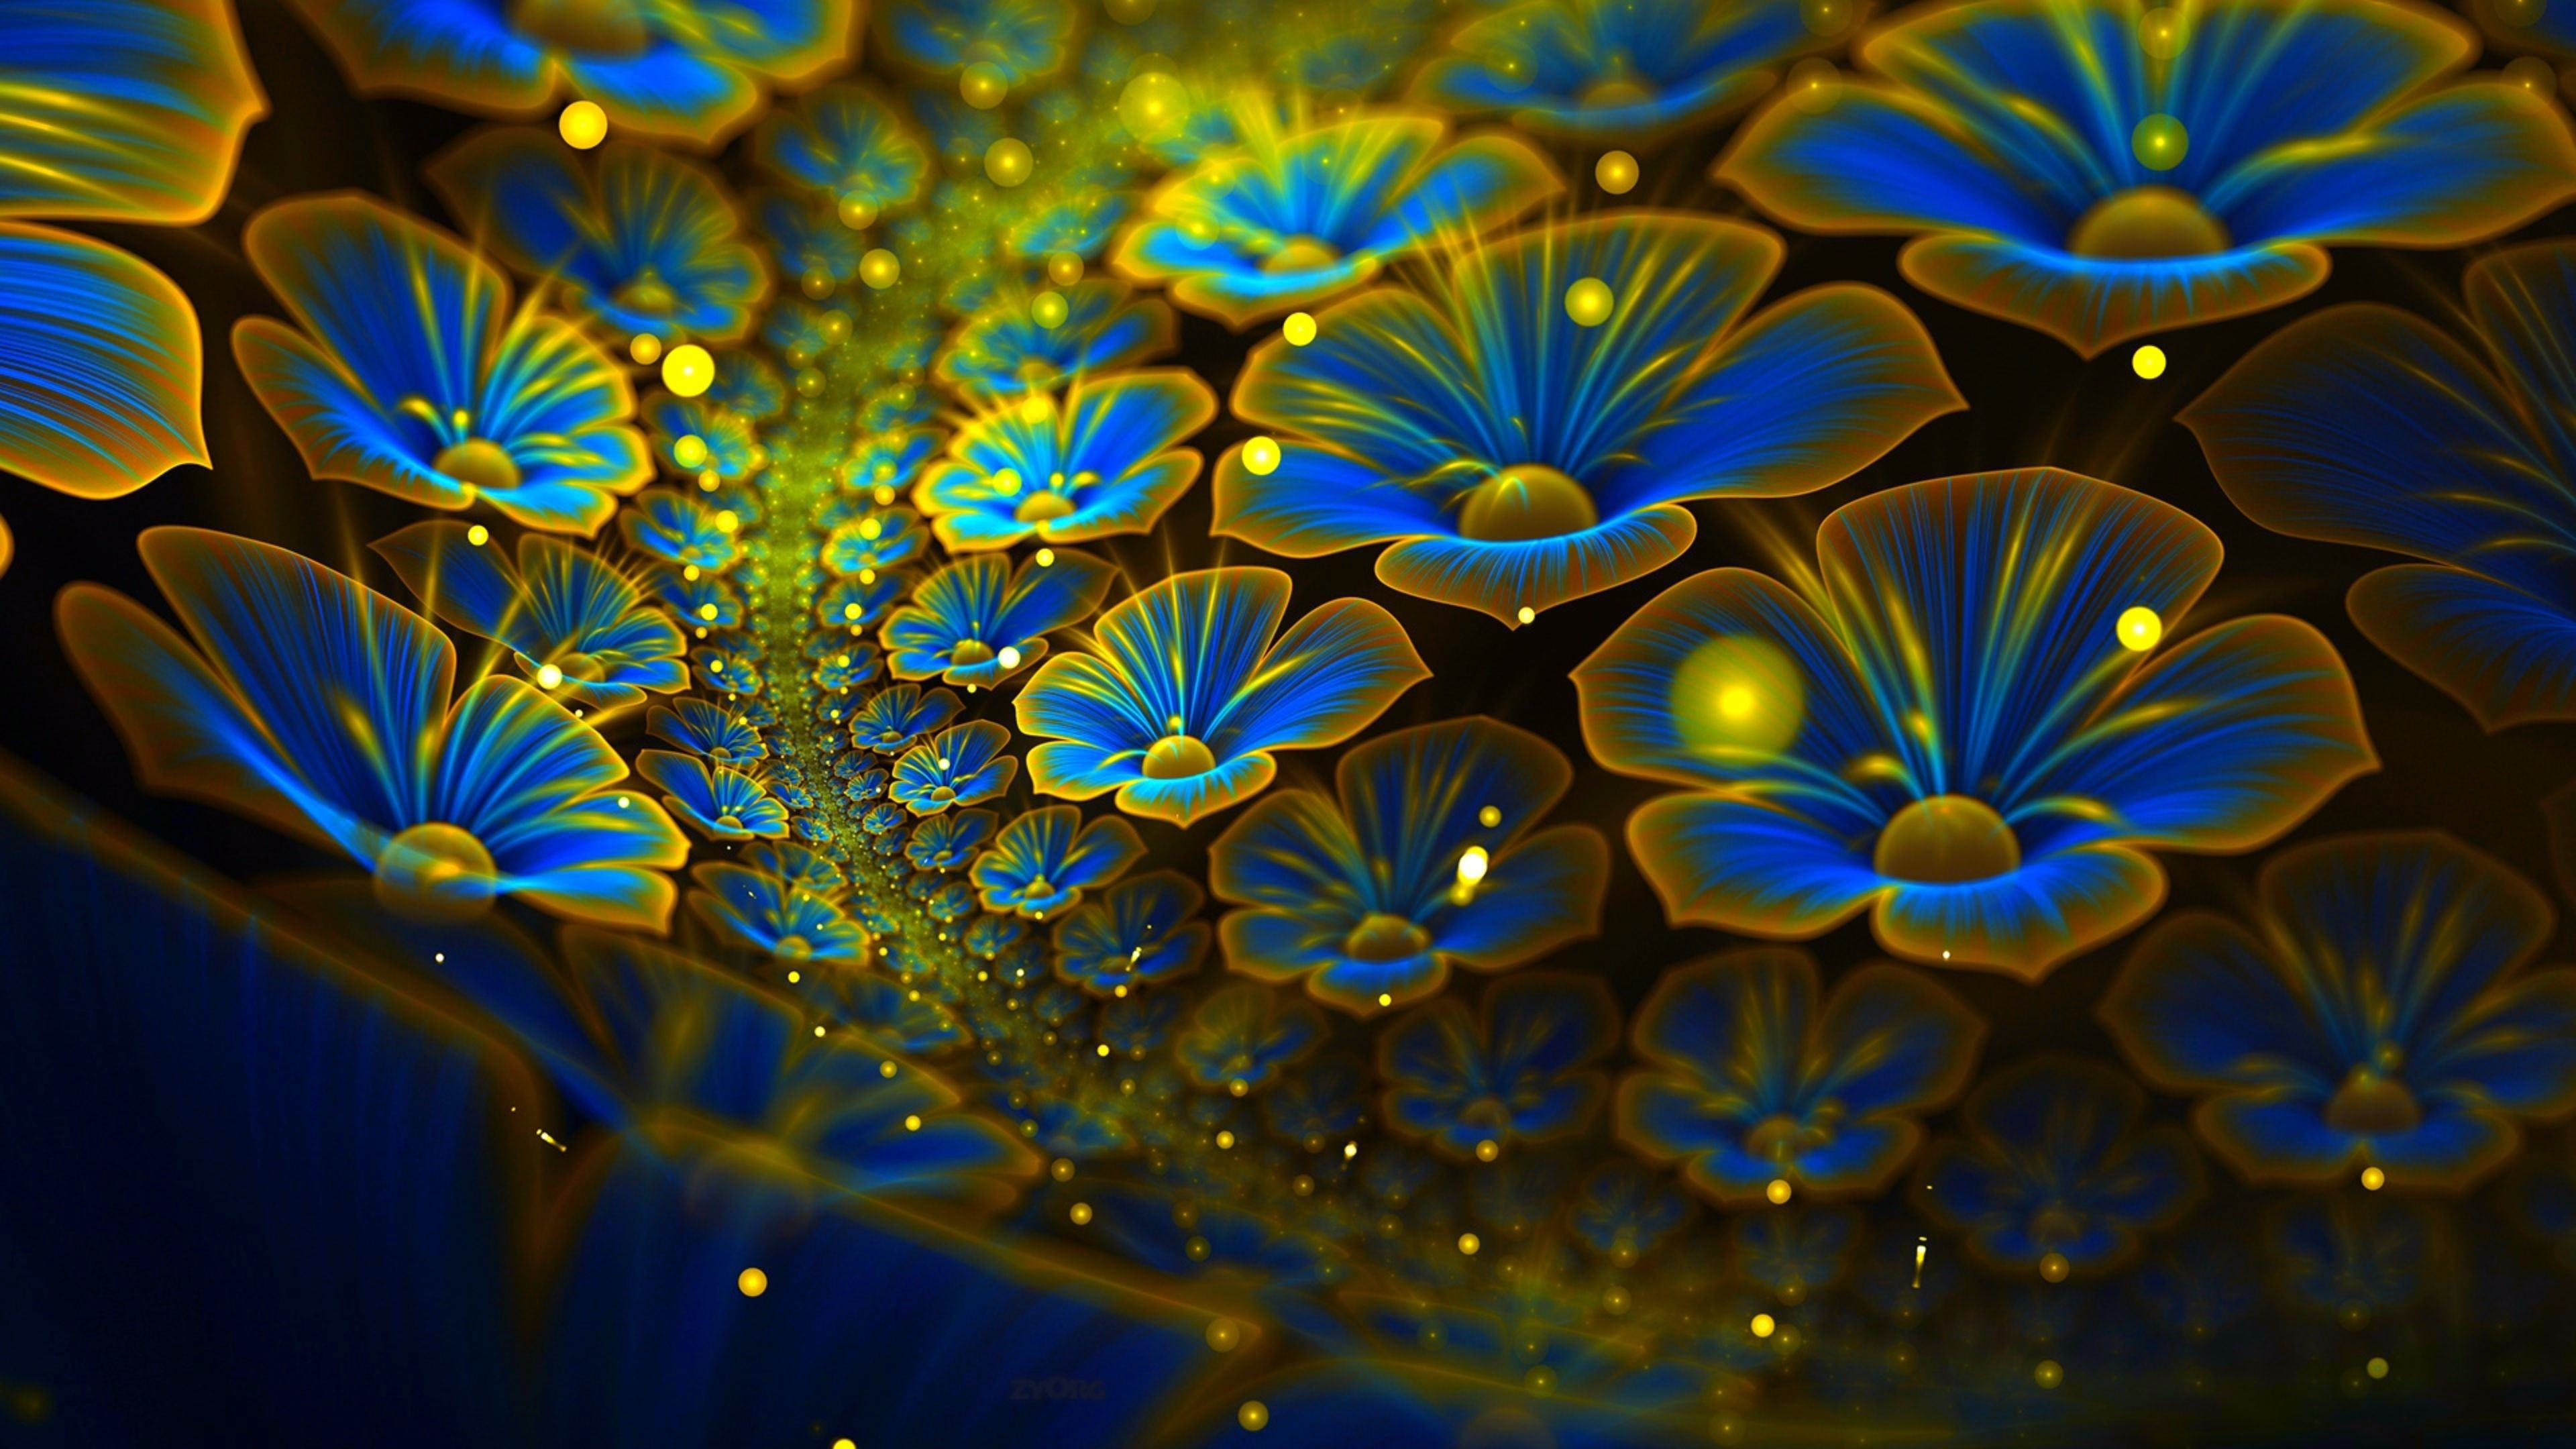 abstract wallpaper os abstract flowers 4k 5k android